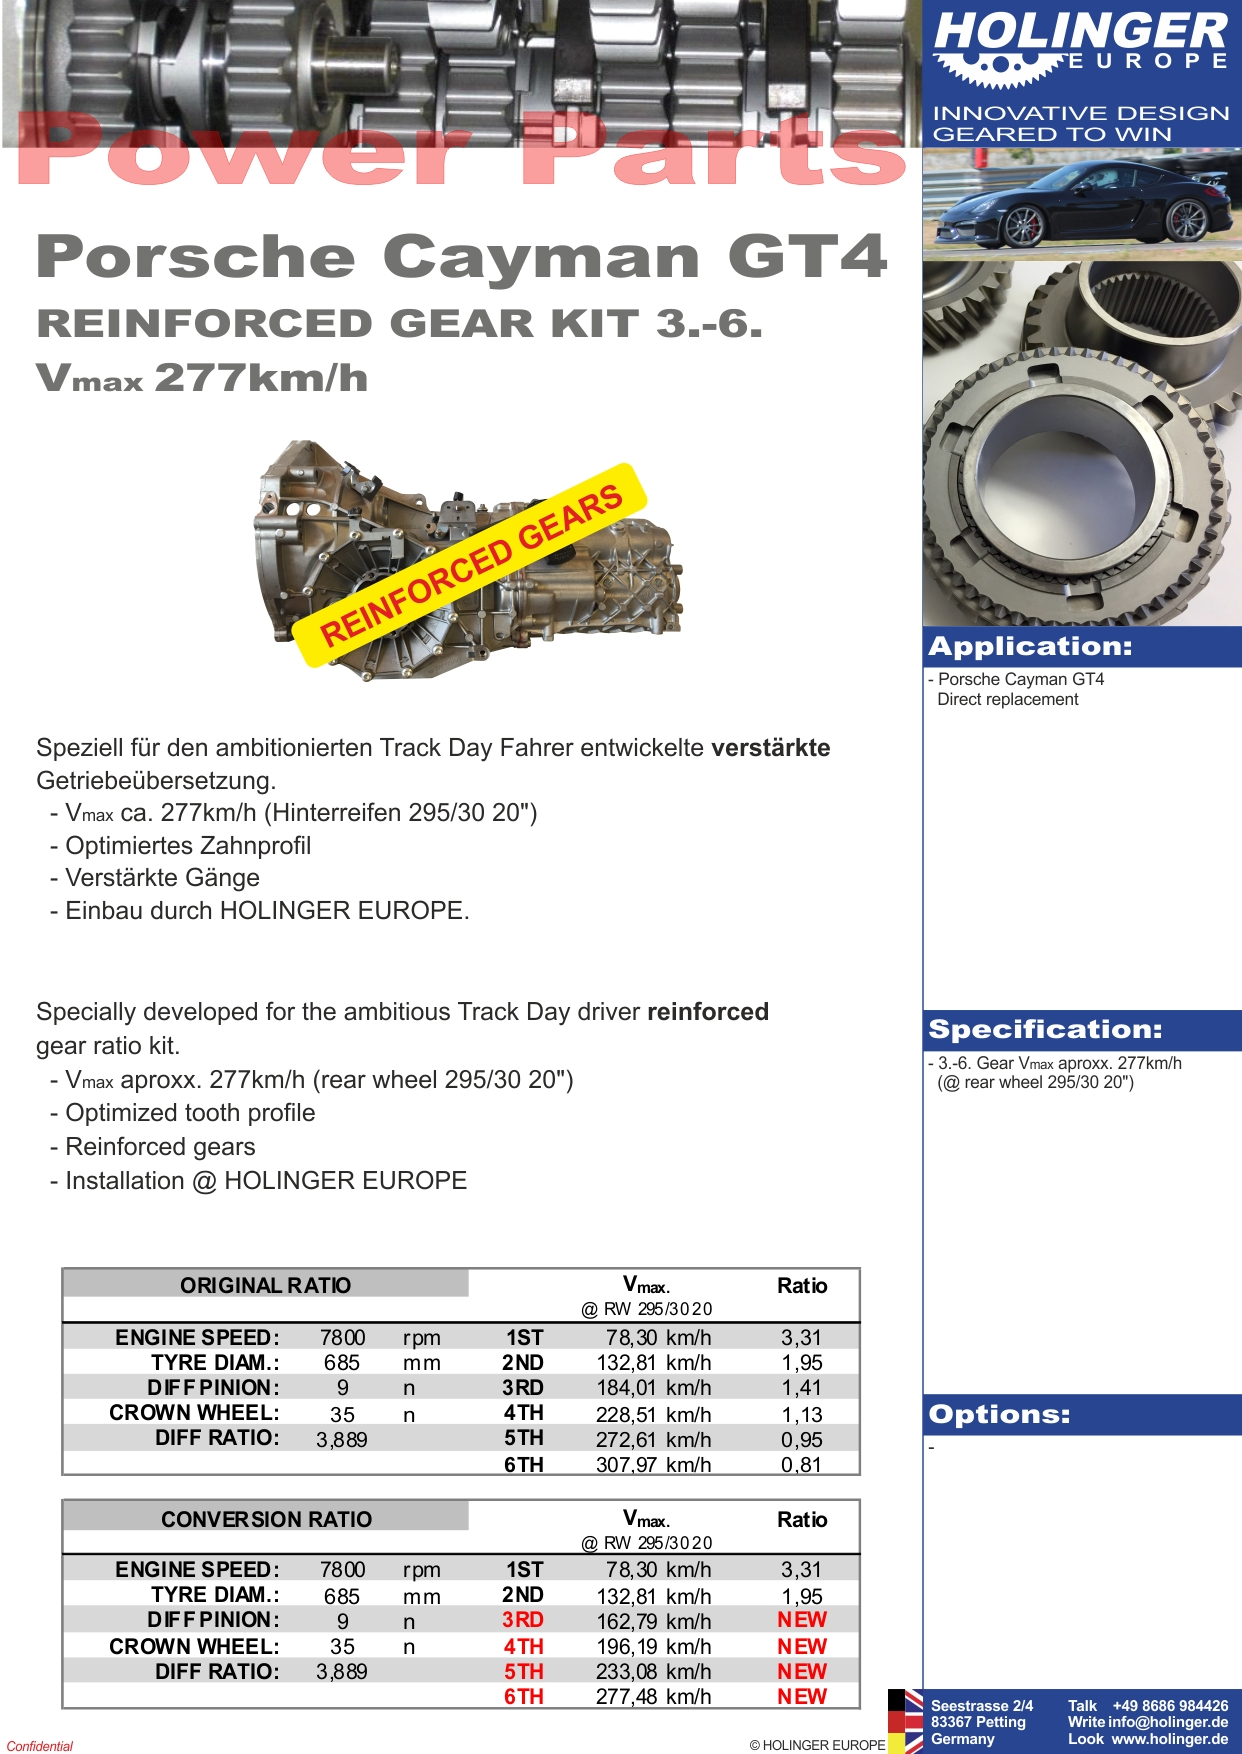 Porsche Cayman GT4 (PG81) 3.-6. gear set